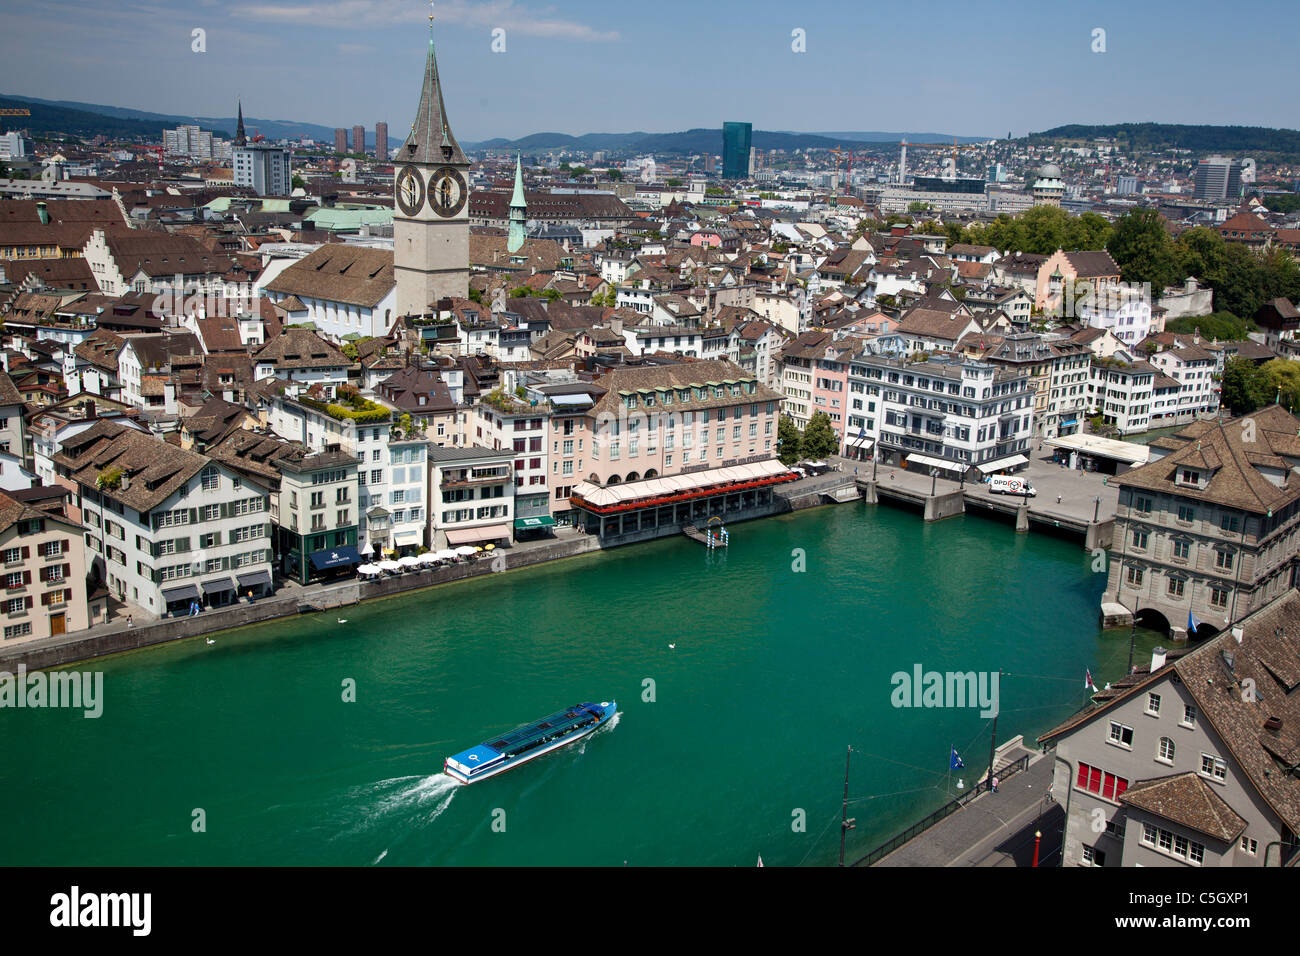 Above view of Zurich, Switzerland - Stock Image